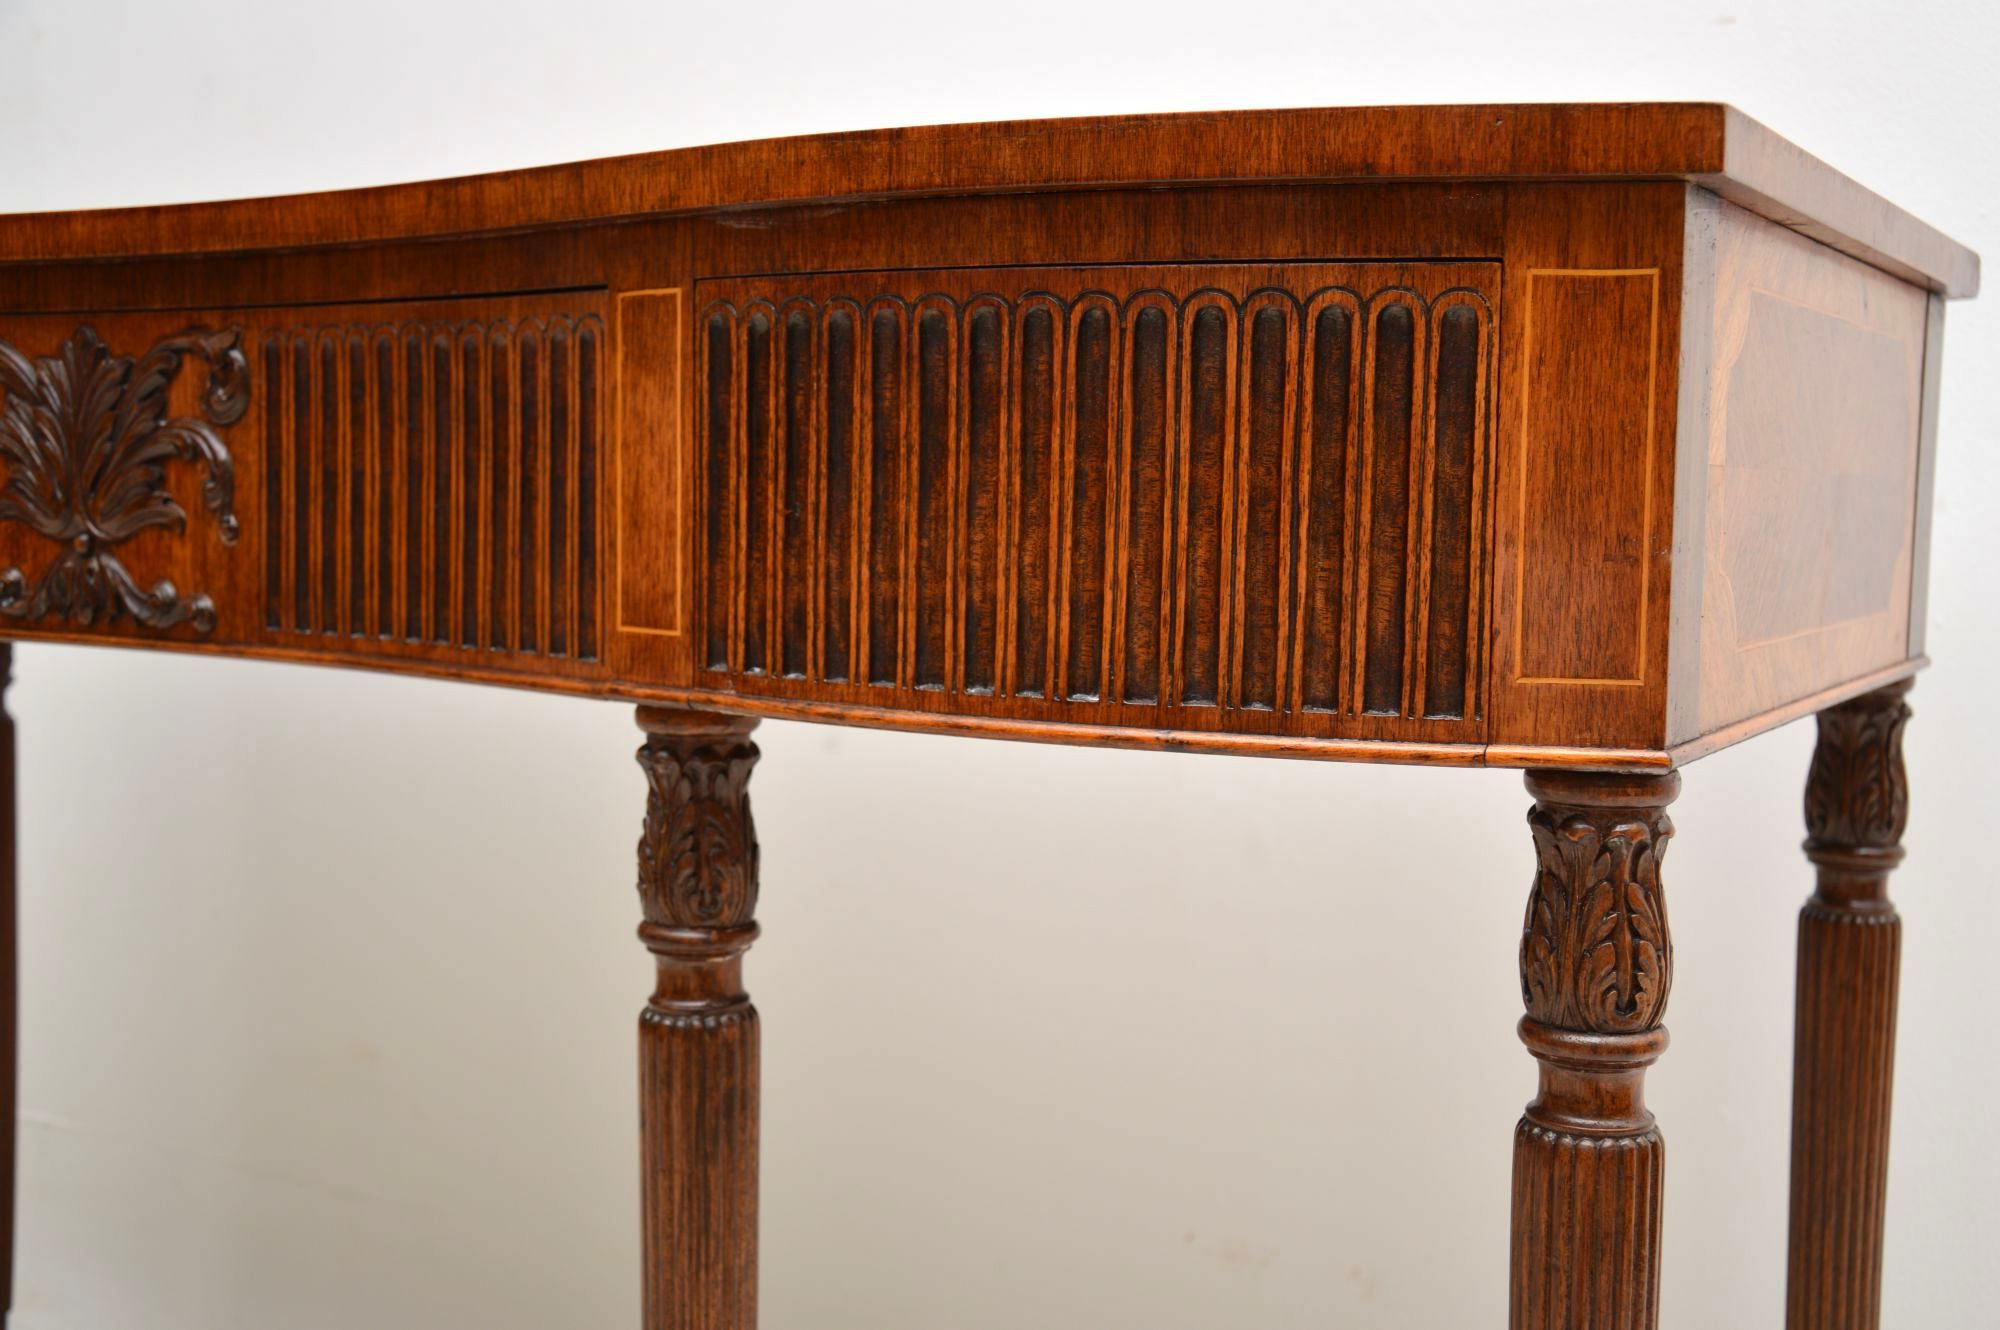 Antique Inlaid Mahogany & Kingwood Server Console Table | Marylebone With Orange Inlay Console Tables (View 7 of 20)